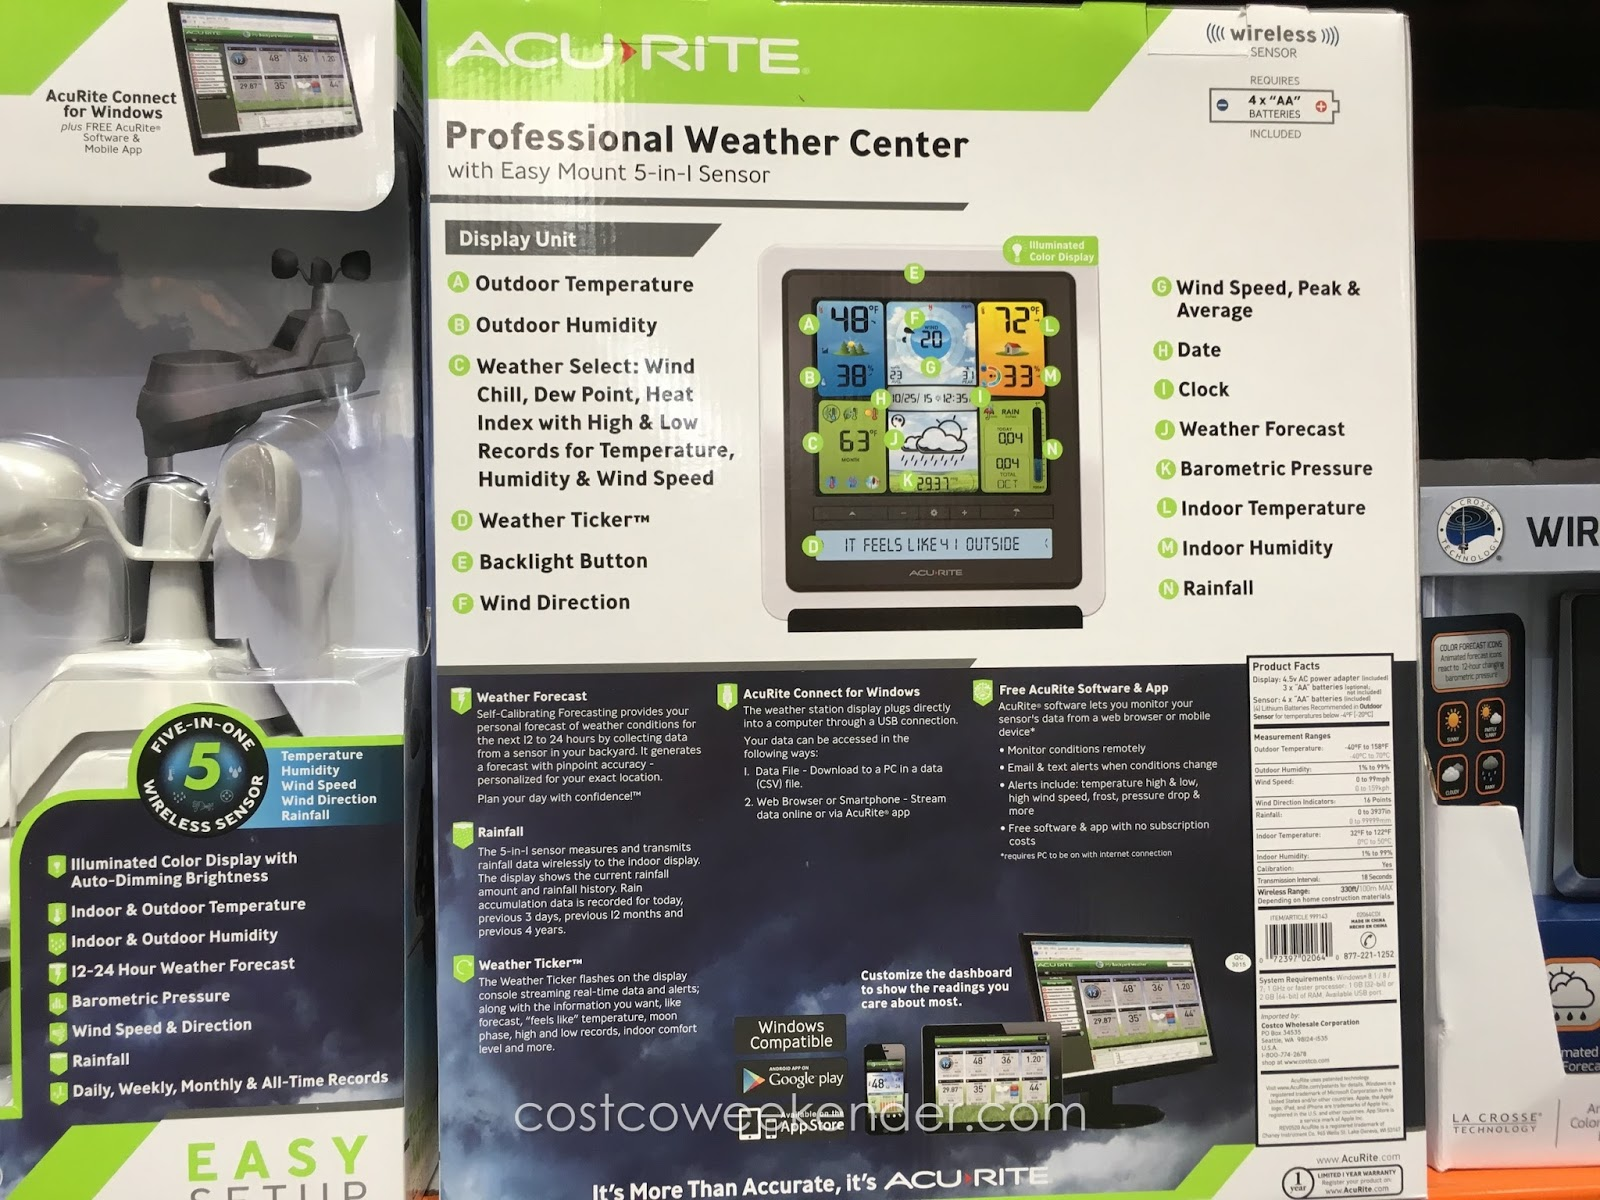 acurite professional weather center costco weekender